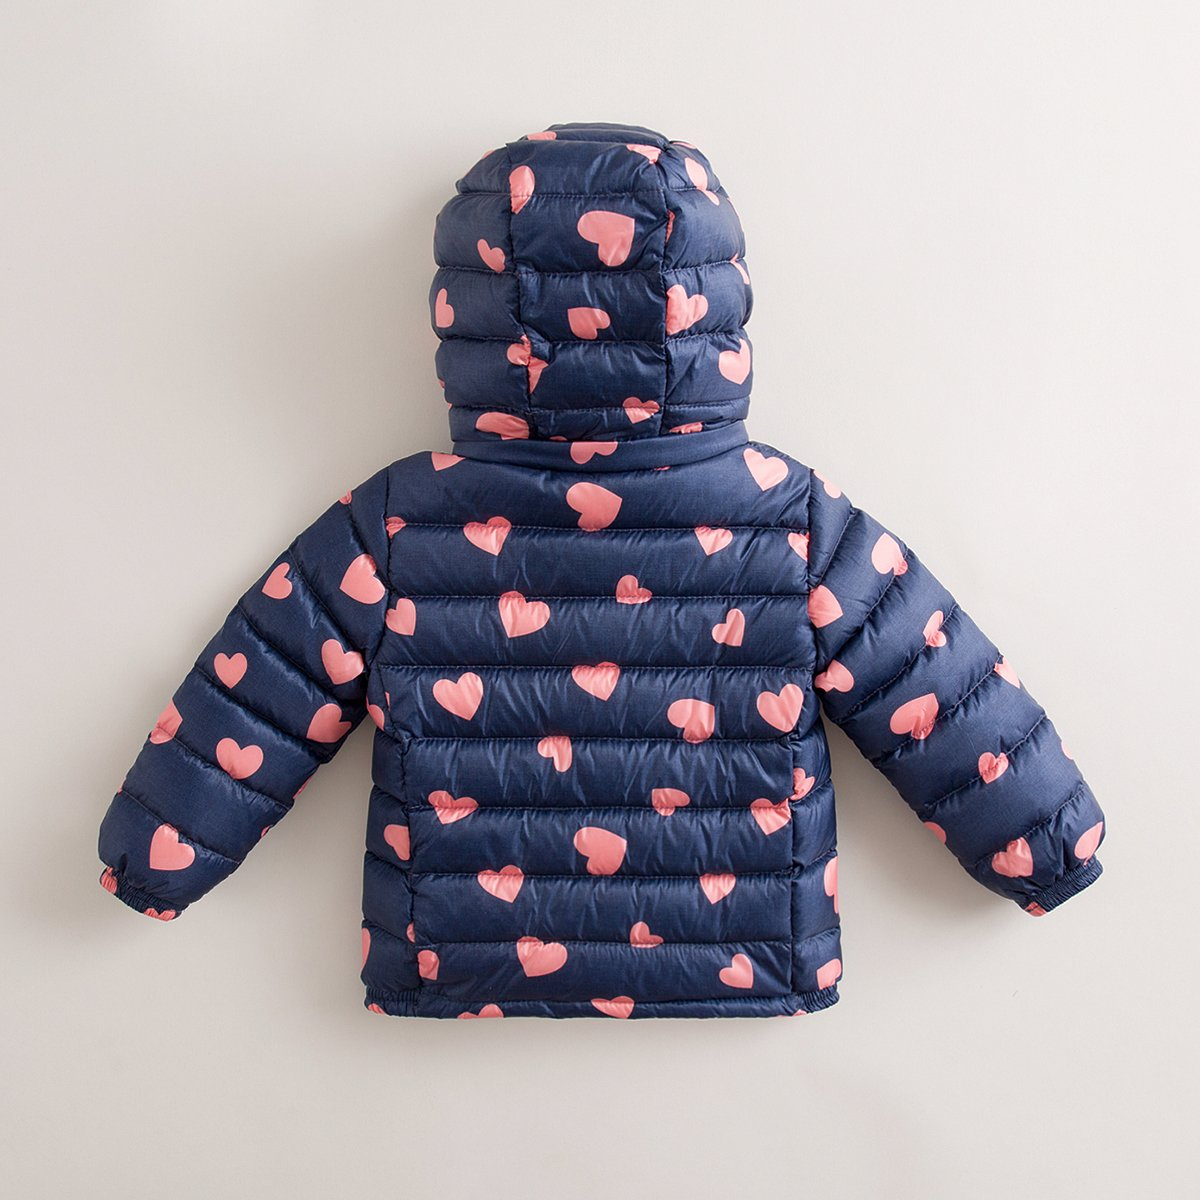 marc janie Little Boys Girls' Winter Pattern Printing Ultra Light Weight Down Jacket Blue Pink Love 3T (90 cm) by marc janie (Image #3)